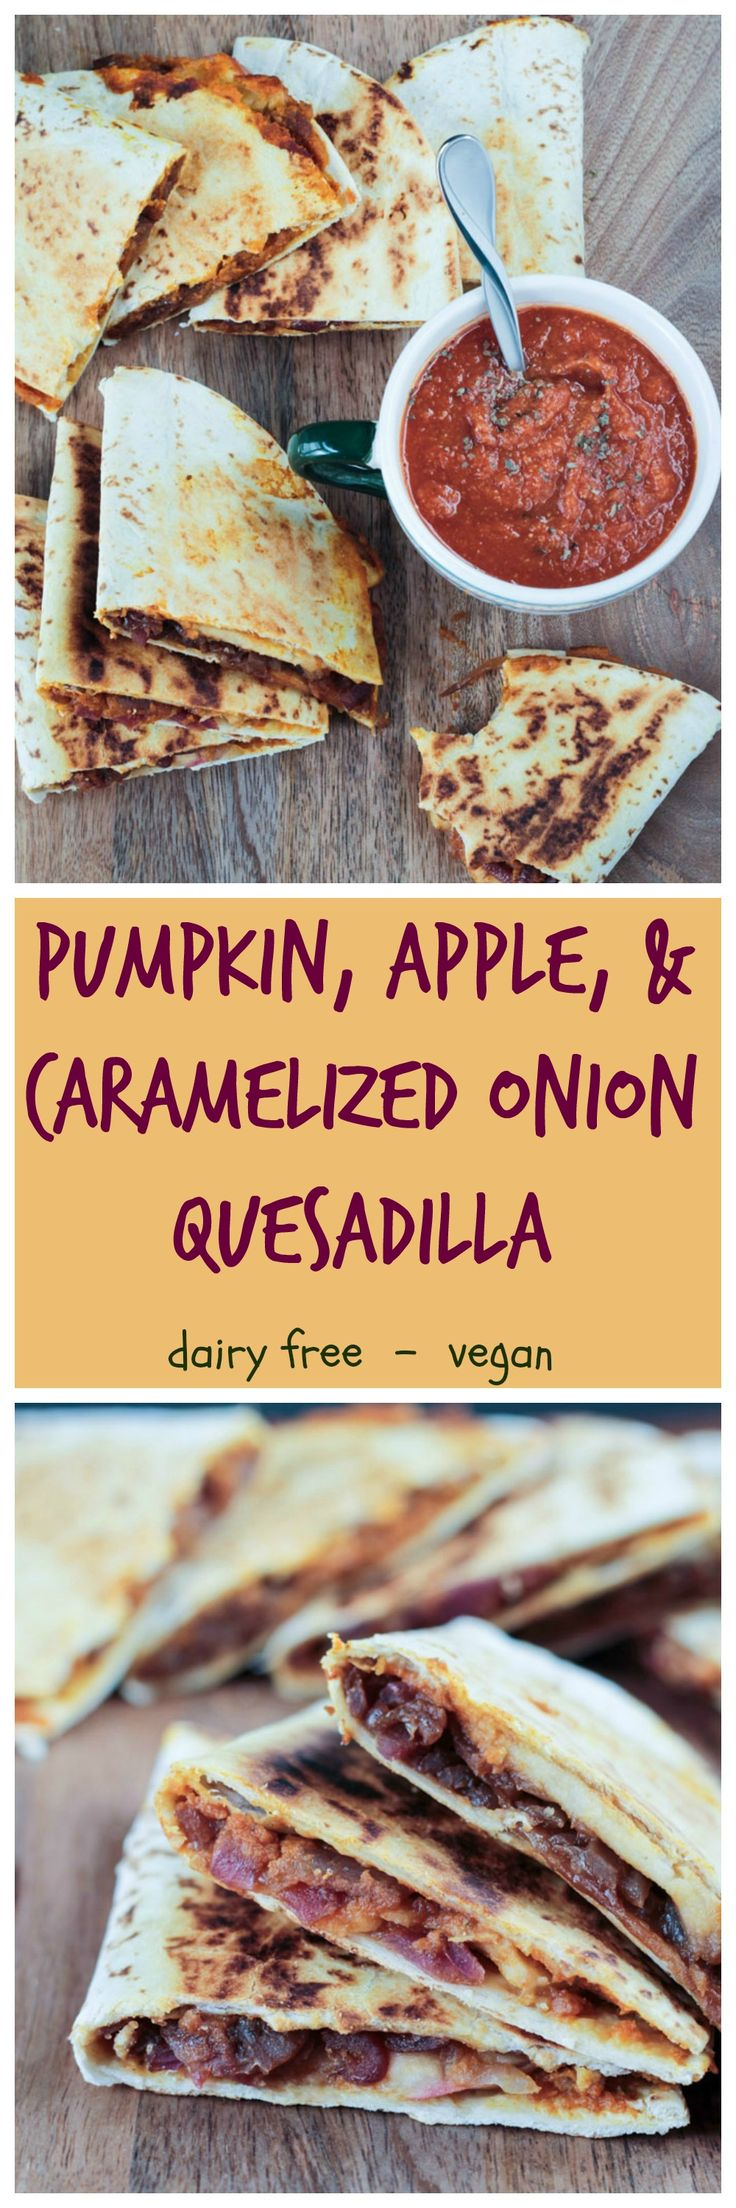 Pumpkin, Apple & Caramelized Onion Quesadilla